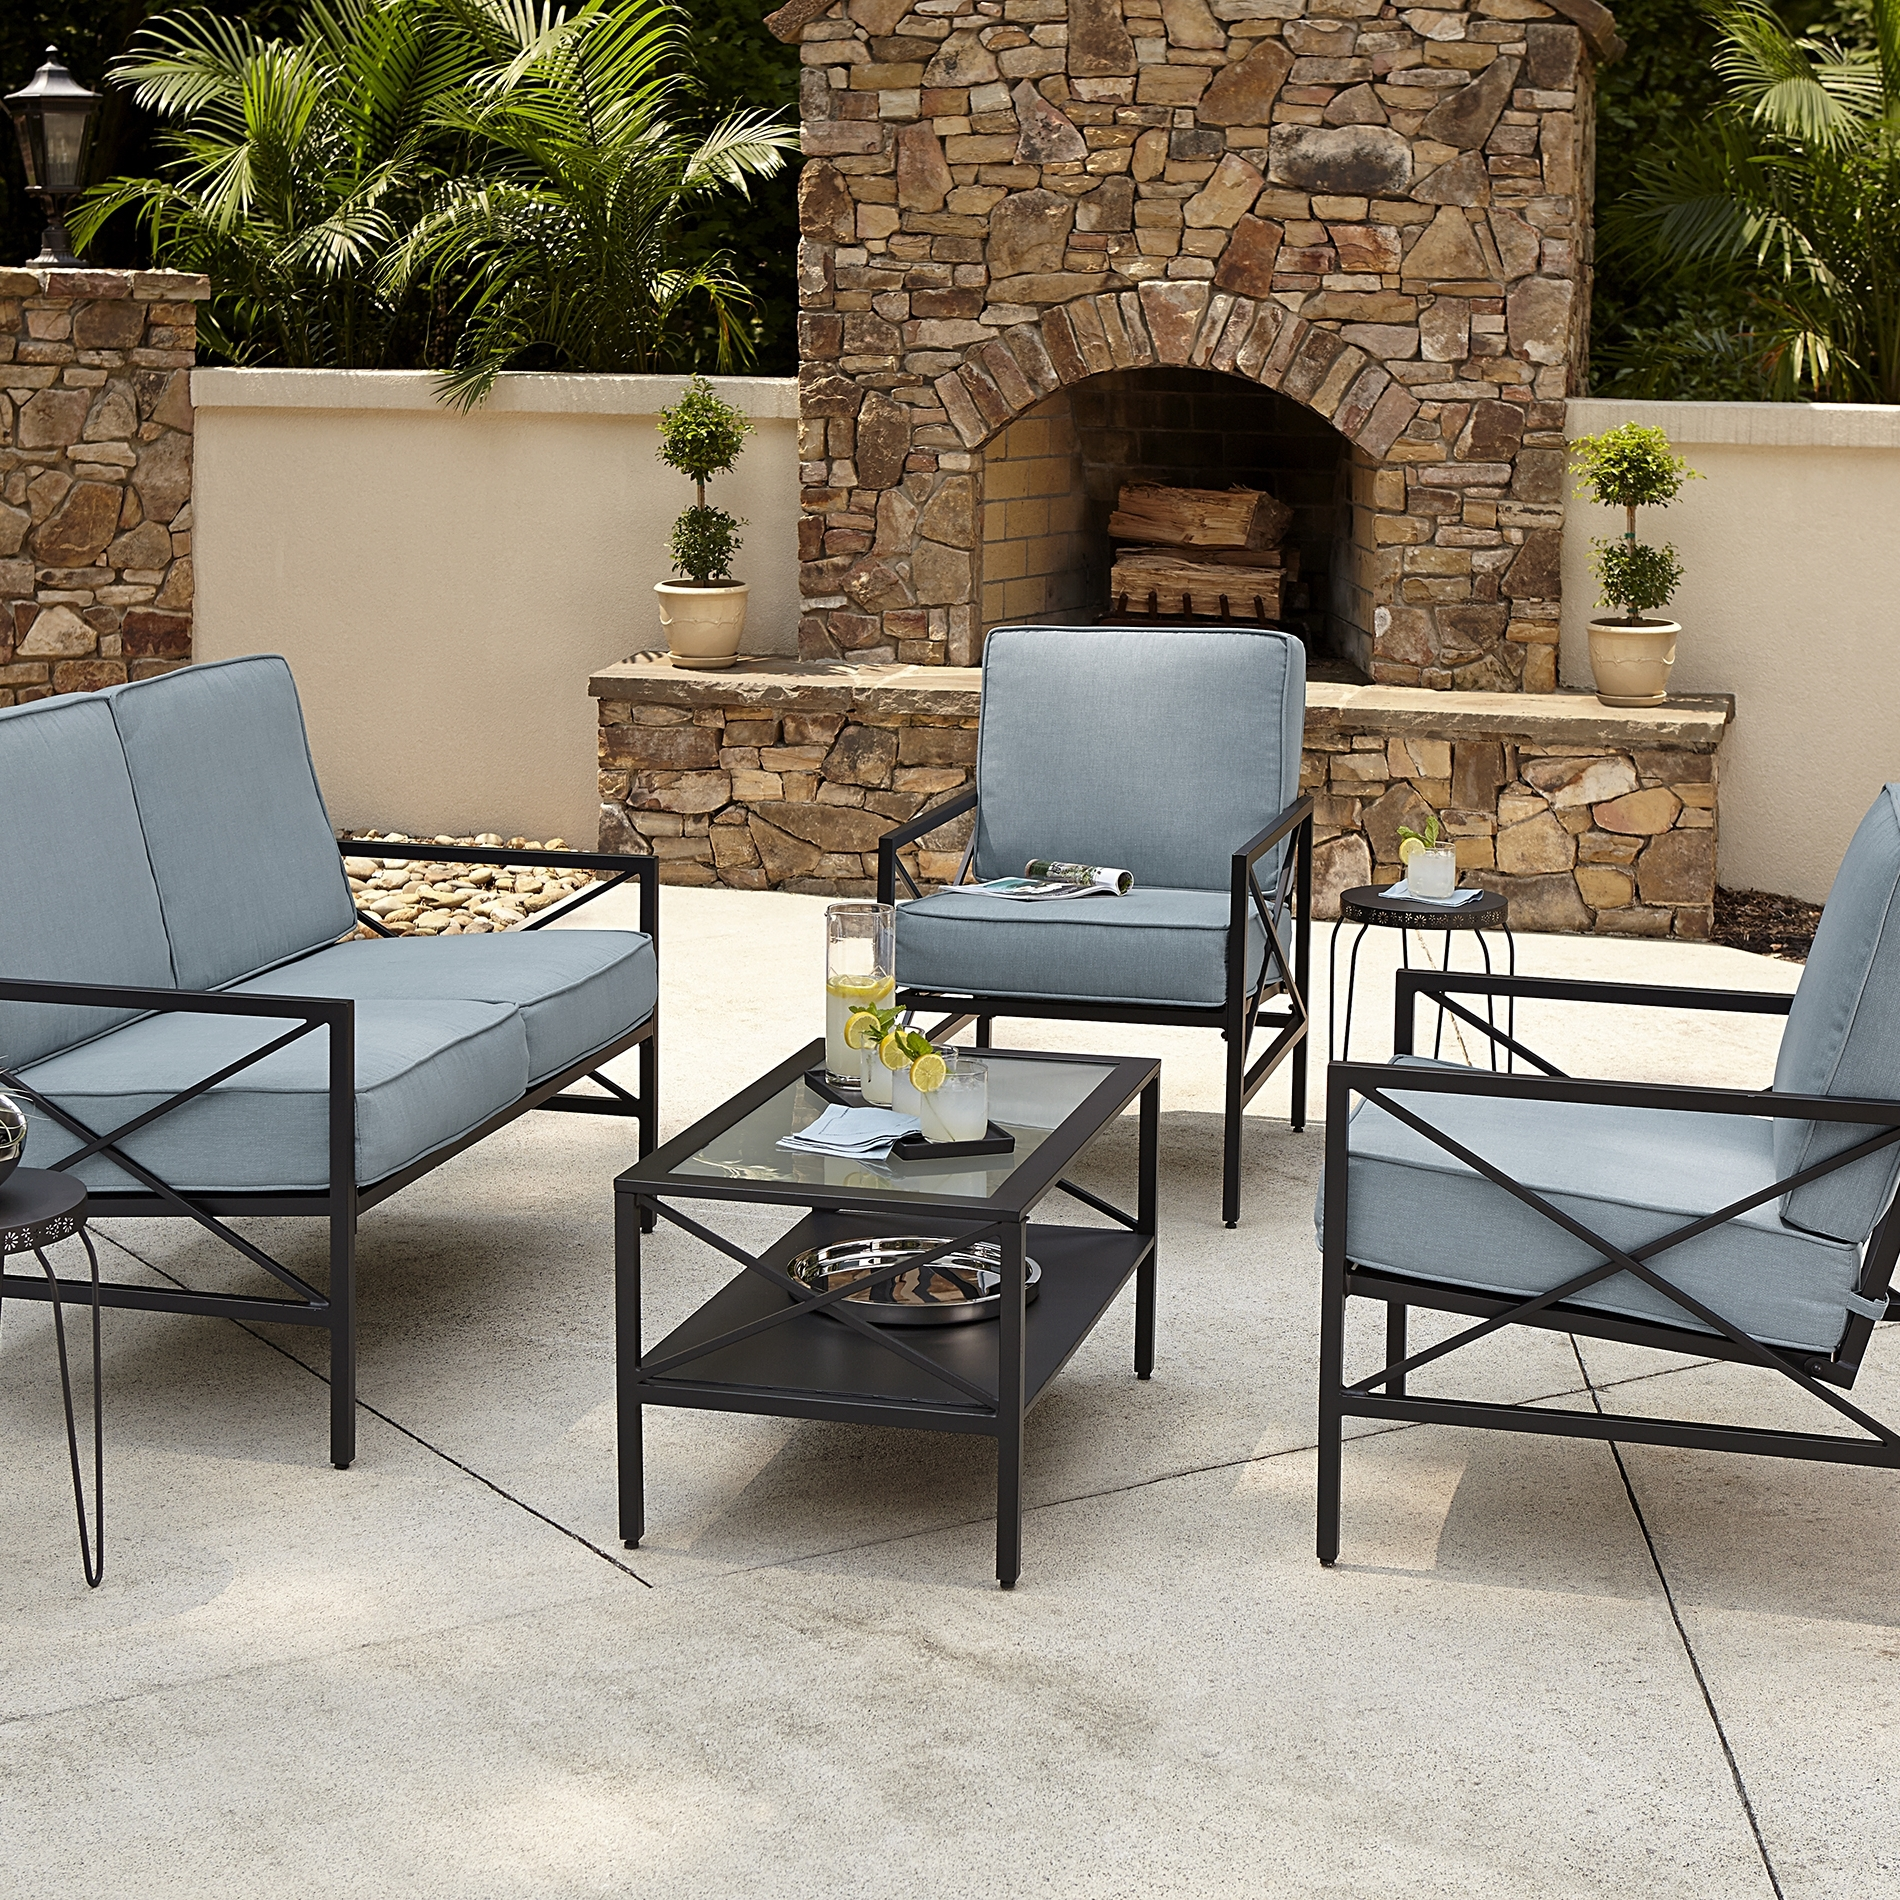 Patio Conversation Sets With Blue Cushions Intended For Most Up To Date Patio : Blue Hill Piecetio Conversation Set Hampton Bay Outdoor Sets (View 10 of 15)